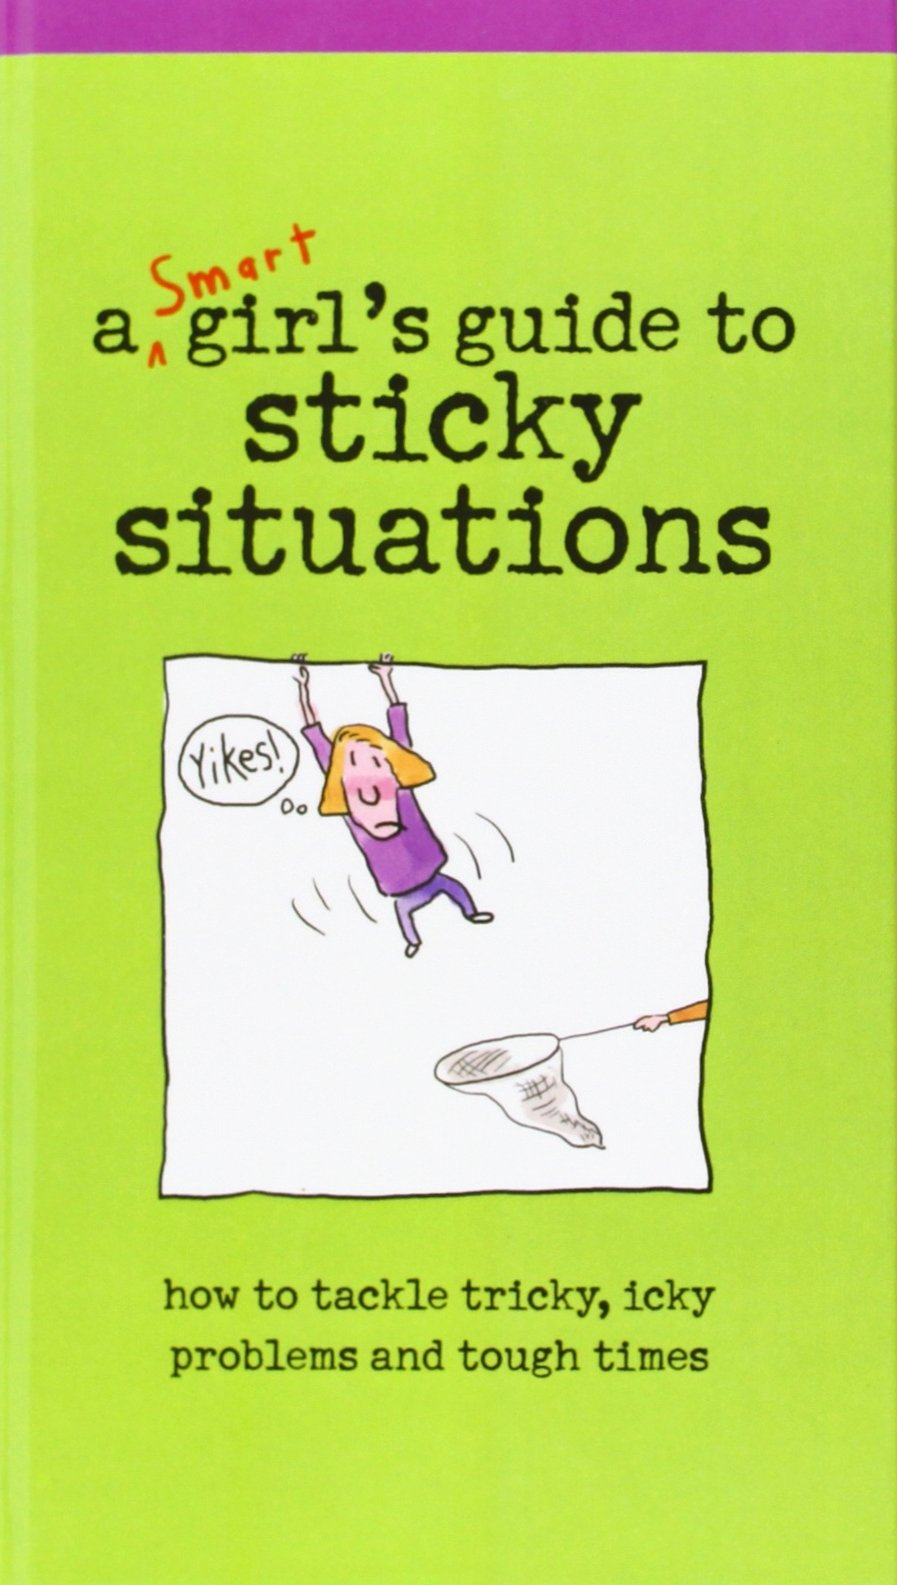 Read Online A Smart Girl's Guide to Sticky Situations: How to Tackle Tricky, Icky Problems and Tough Times. (American Girl Library) pdf